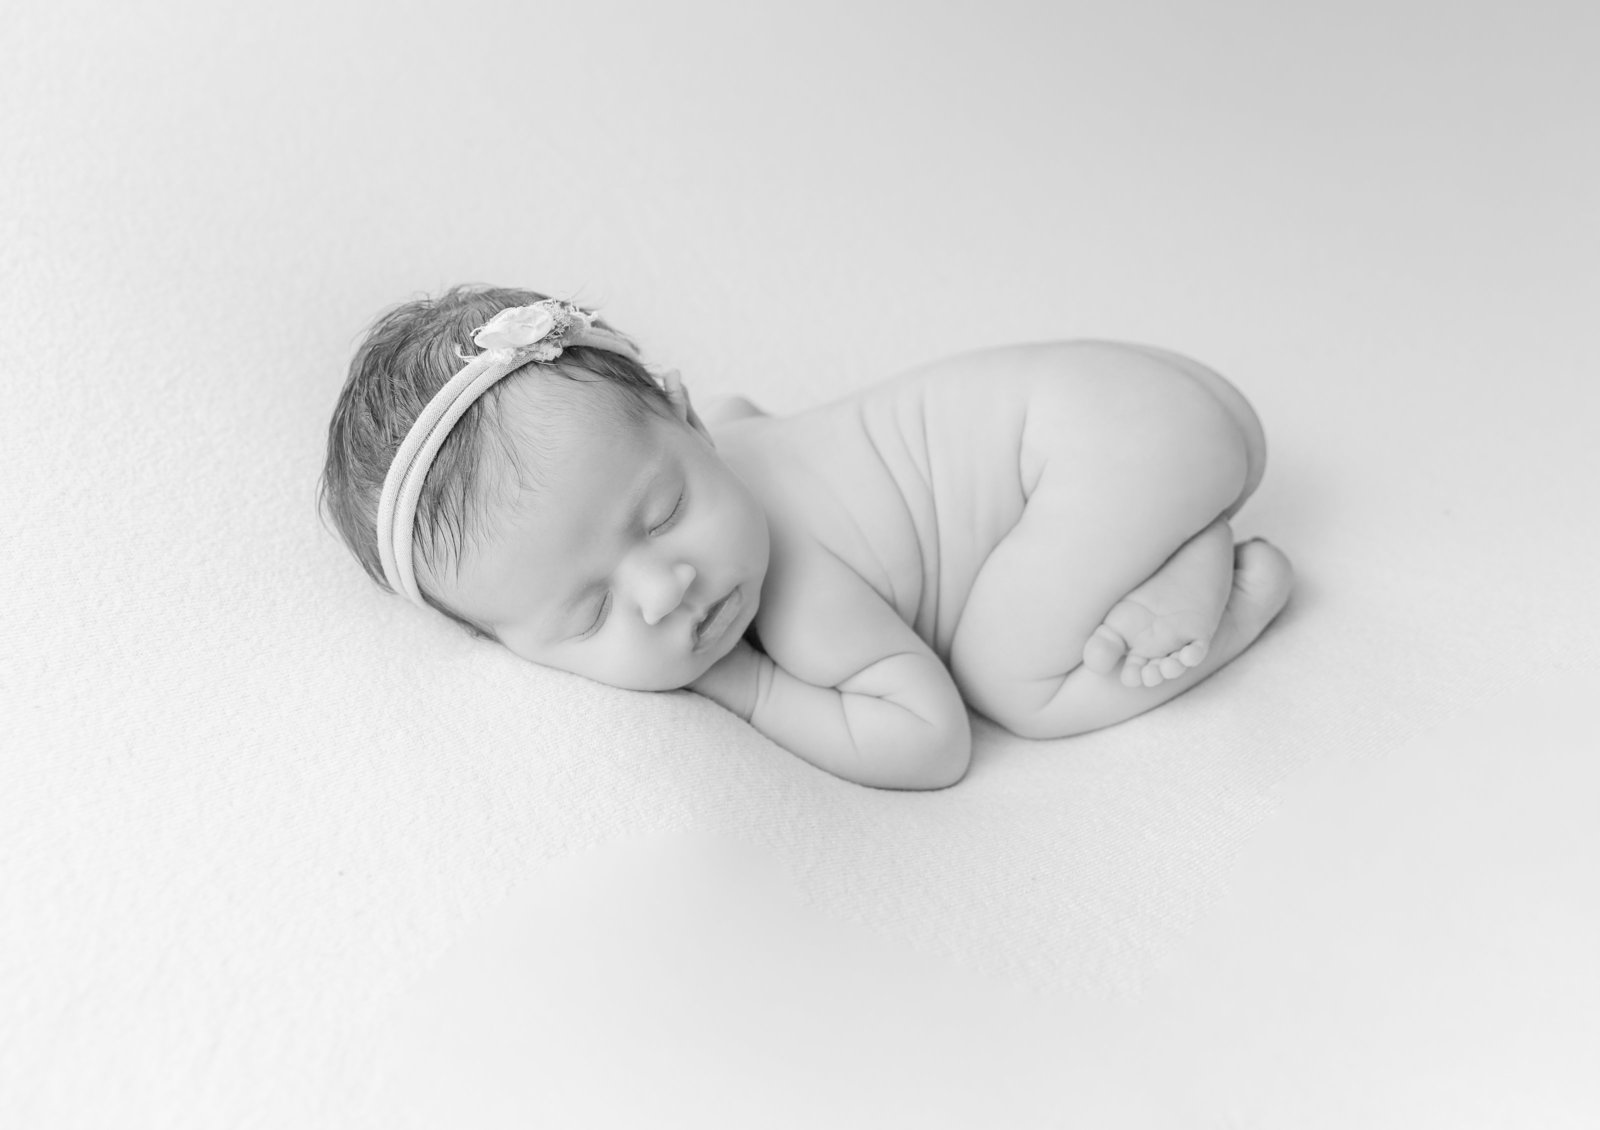 bw-newborn-summer-baby-ottawa-photographer-grey-loft-studio-2019-13